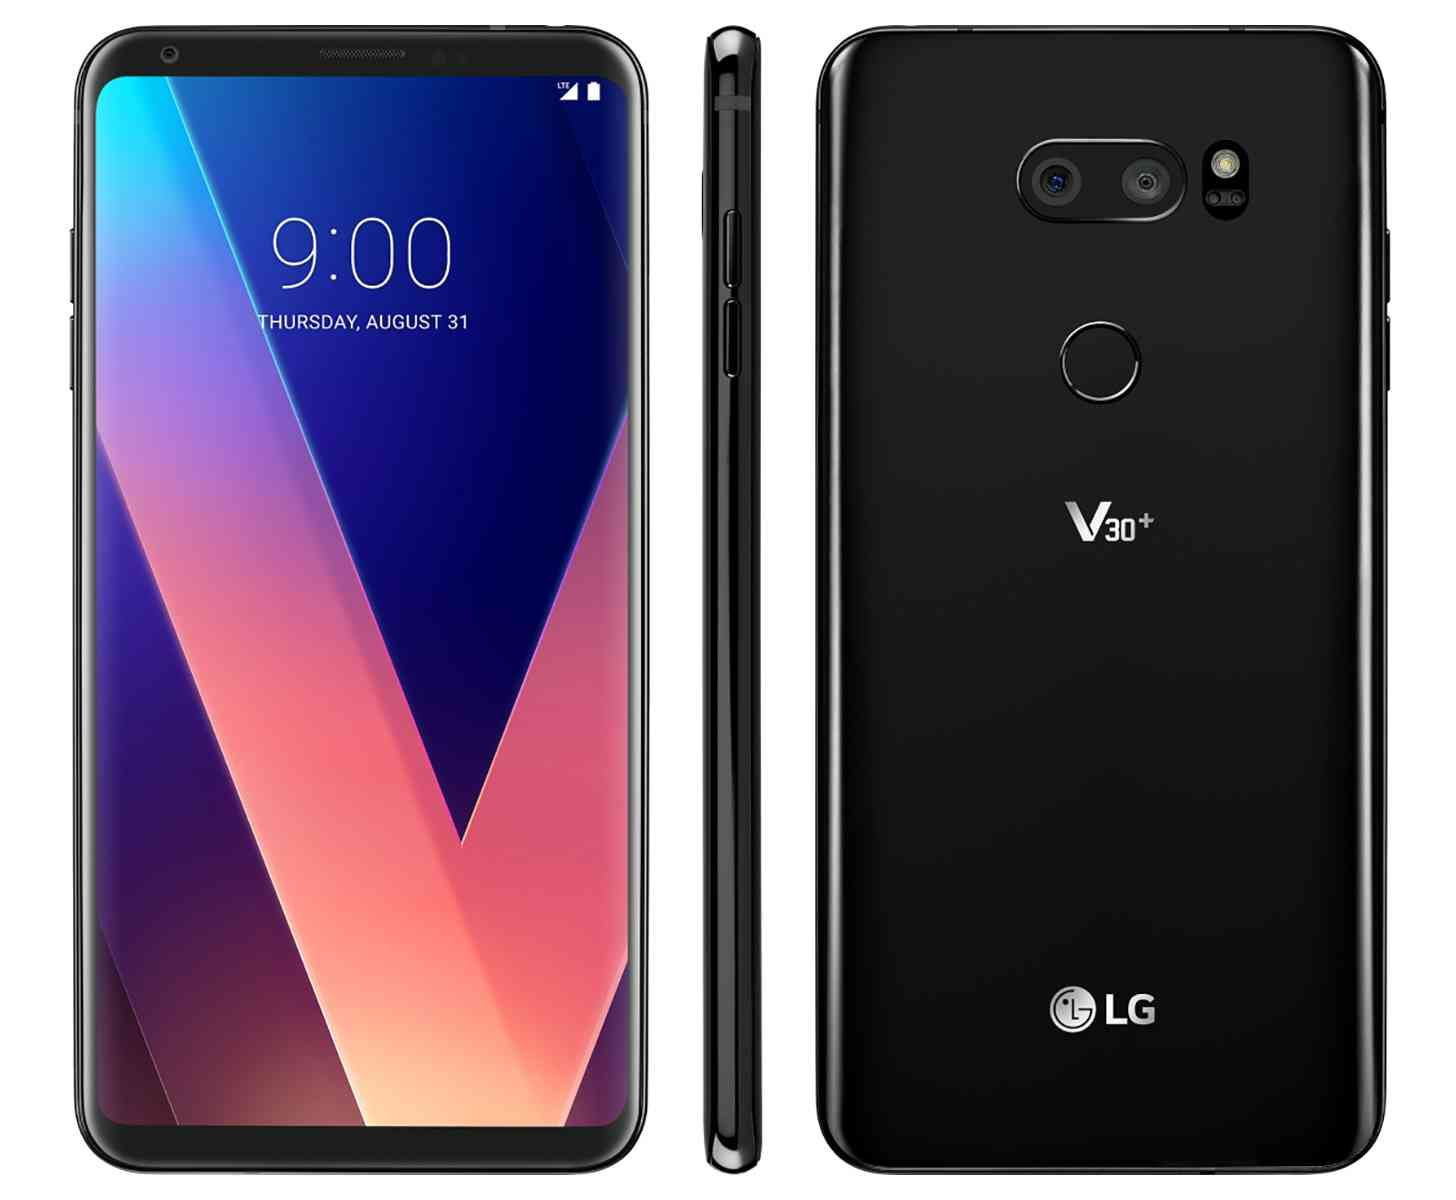 LG V30+ To Be Launched In India On December 13th